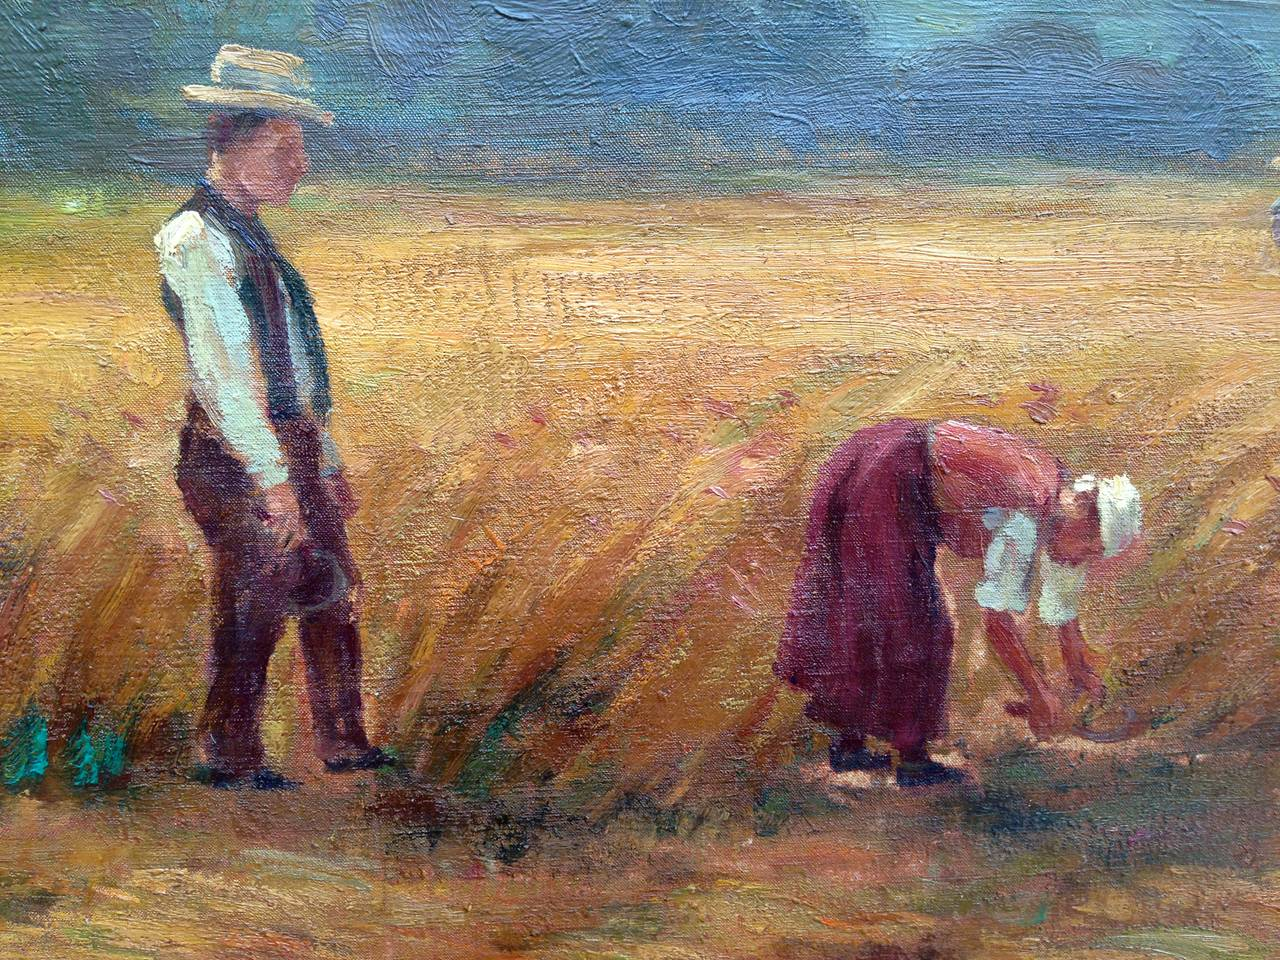 French School 19th Century Autumn Harvest - Black Figurative Painting by Unknown